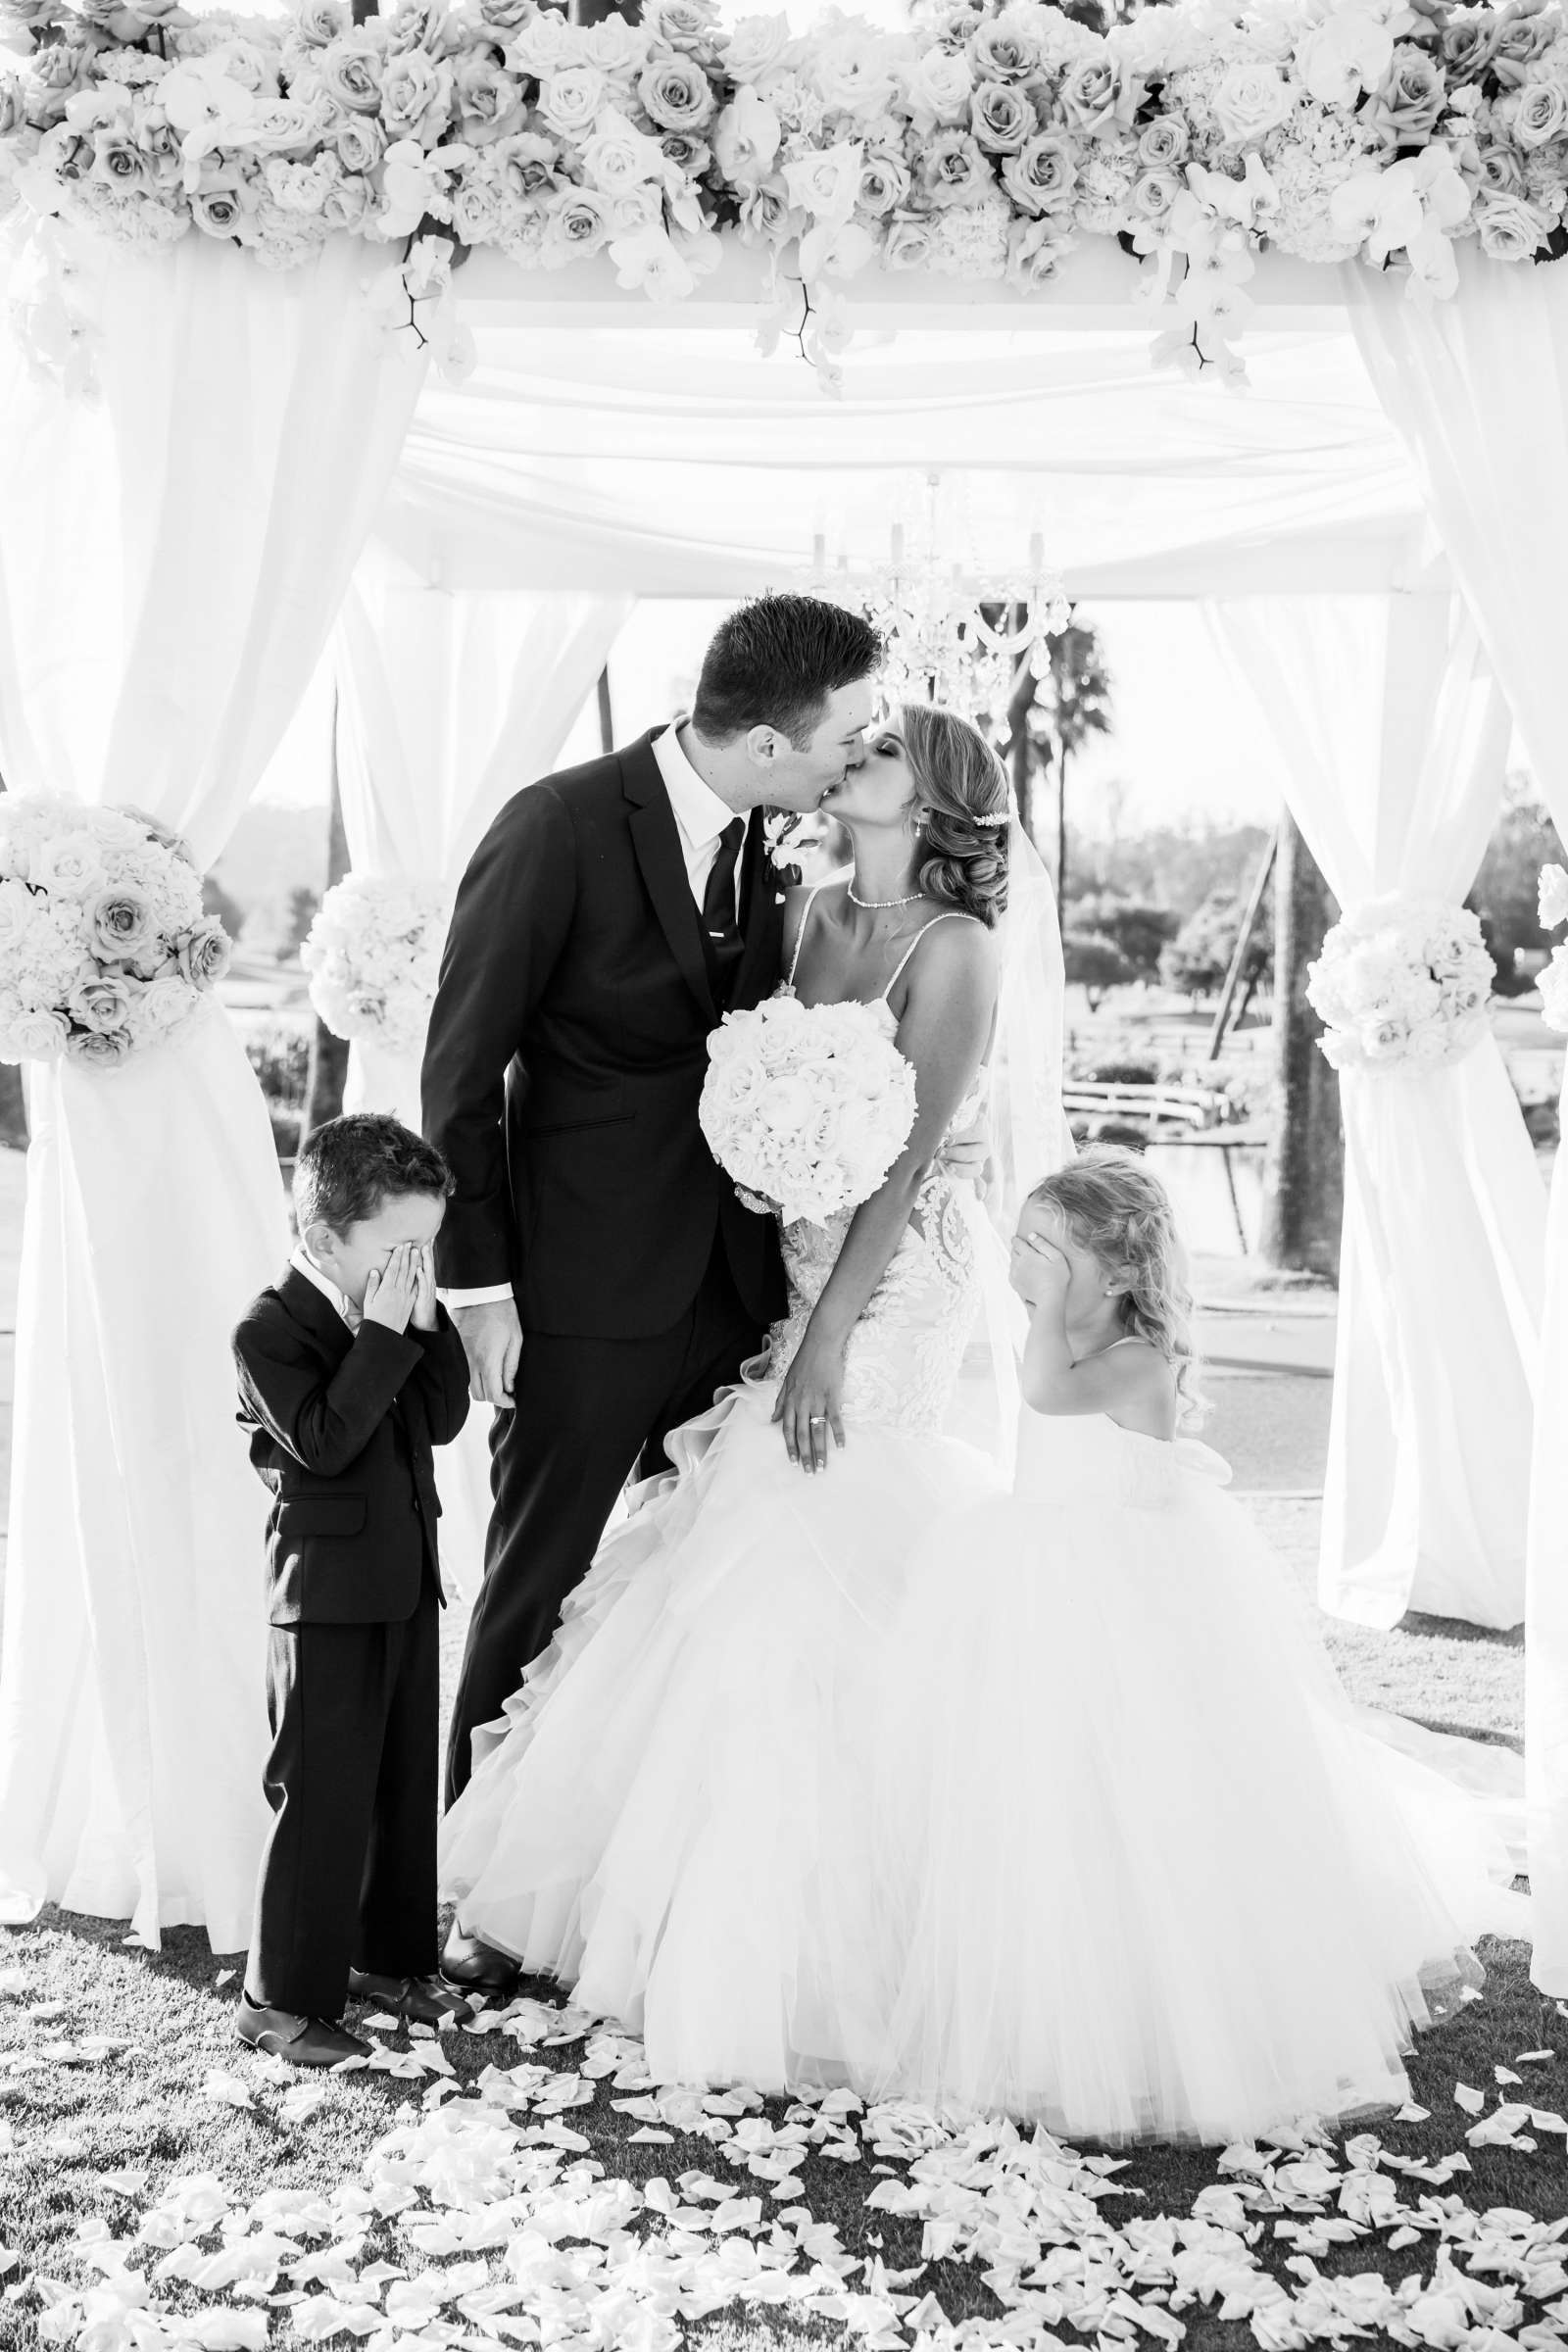 Fairbanks Ranch Country Club Wedding coordinated by Monarch Weddings, Gabriella and Kyle Wedding Photo #101 by True Photography